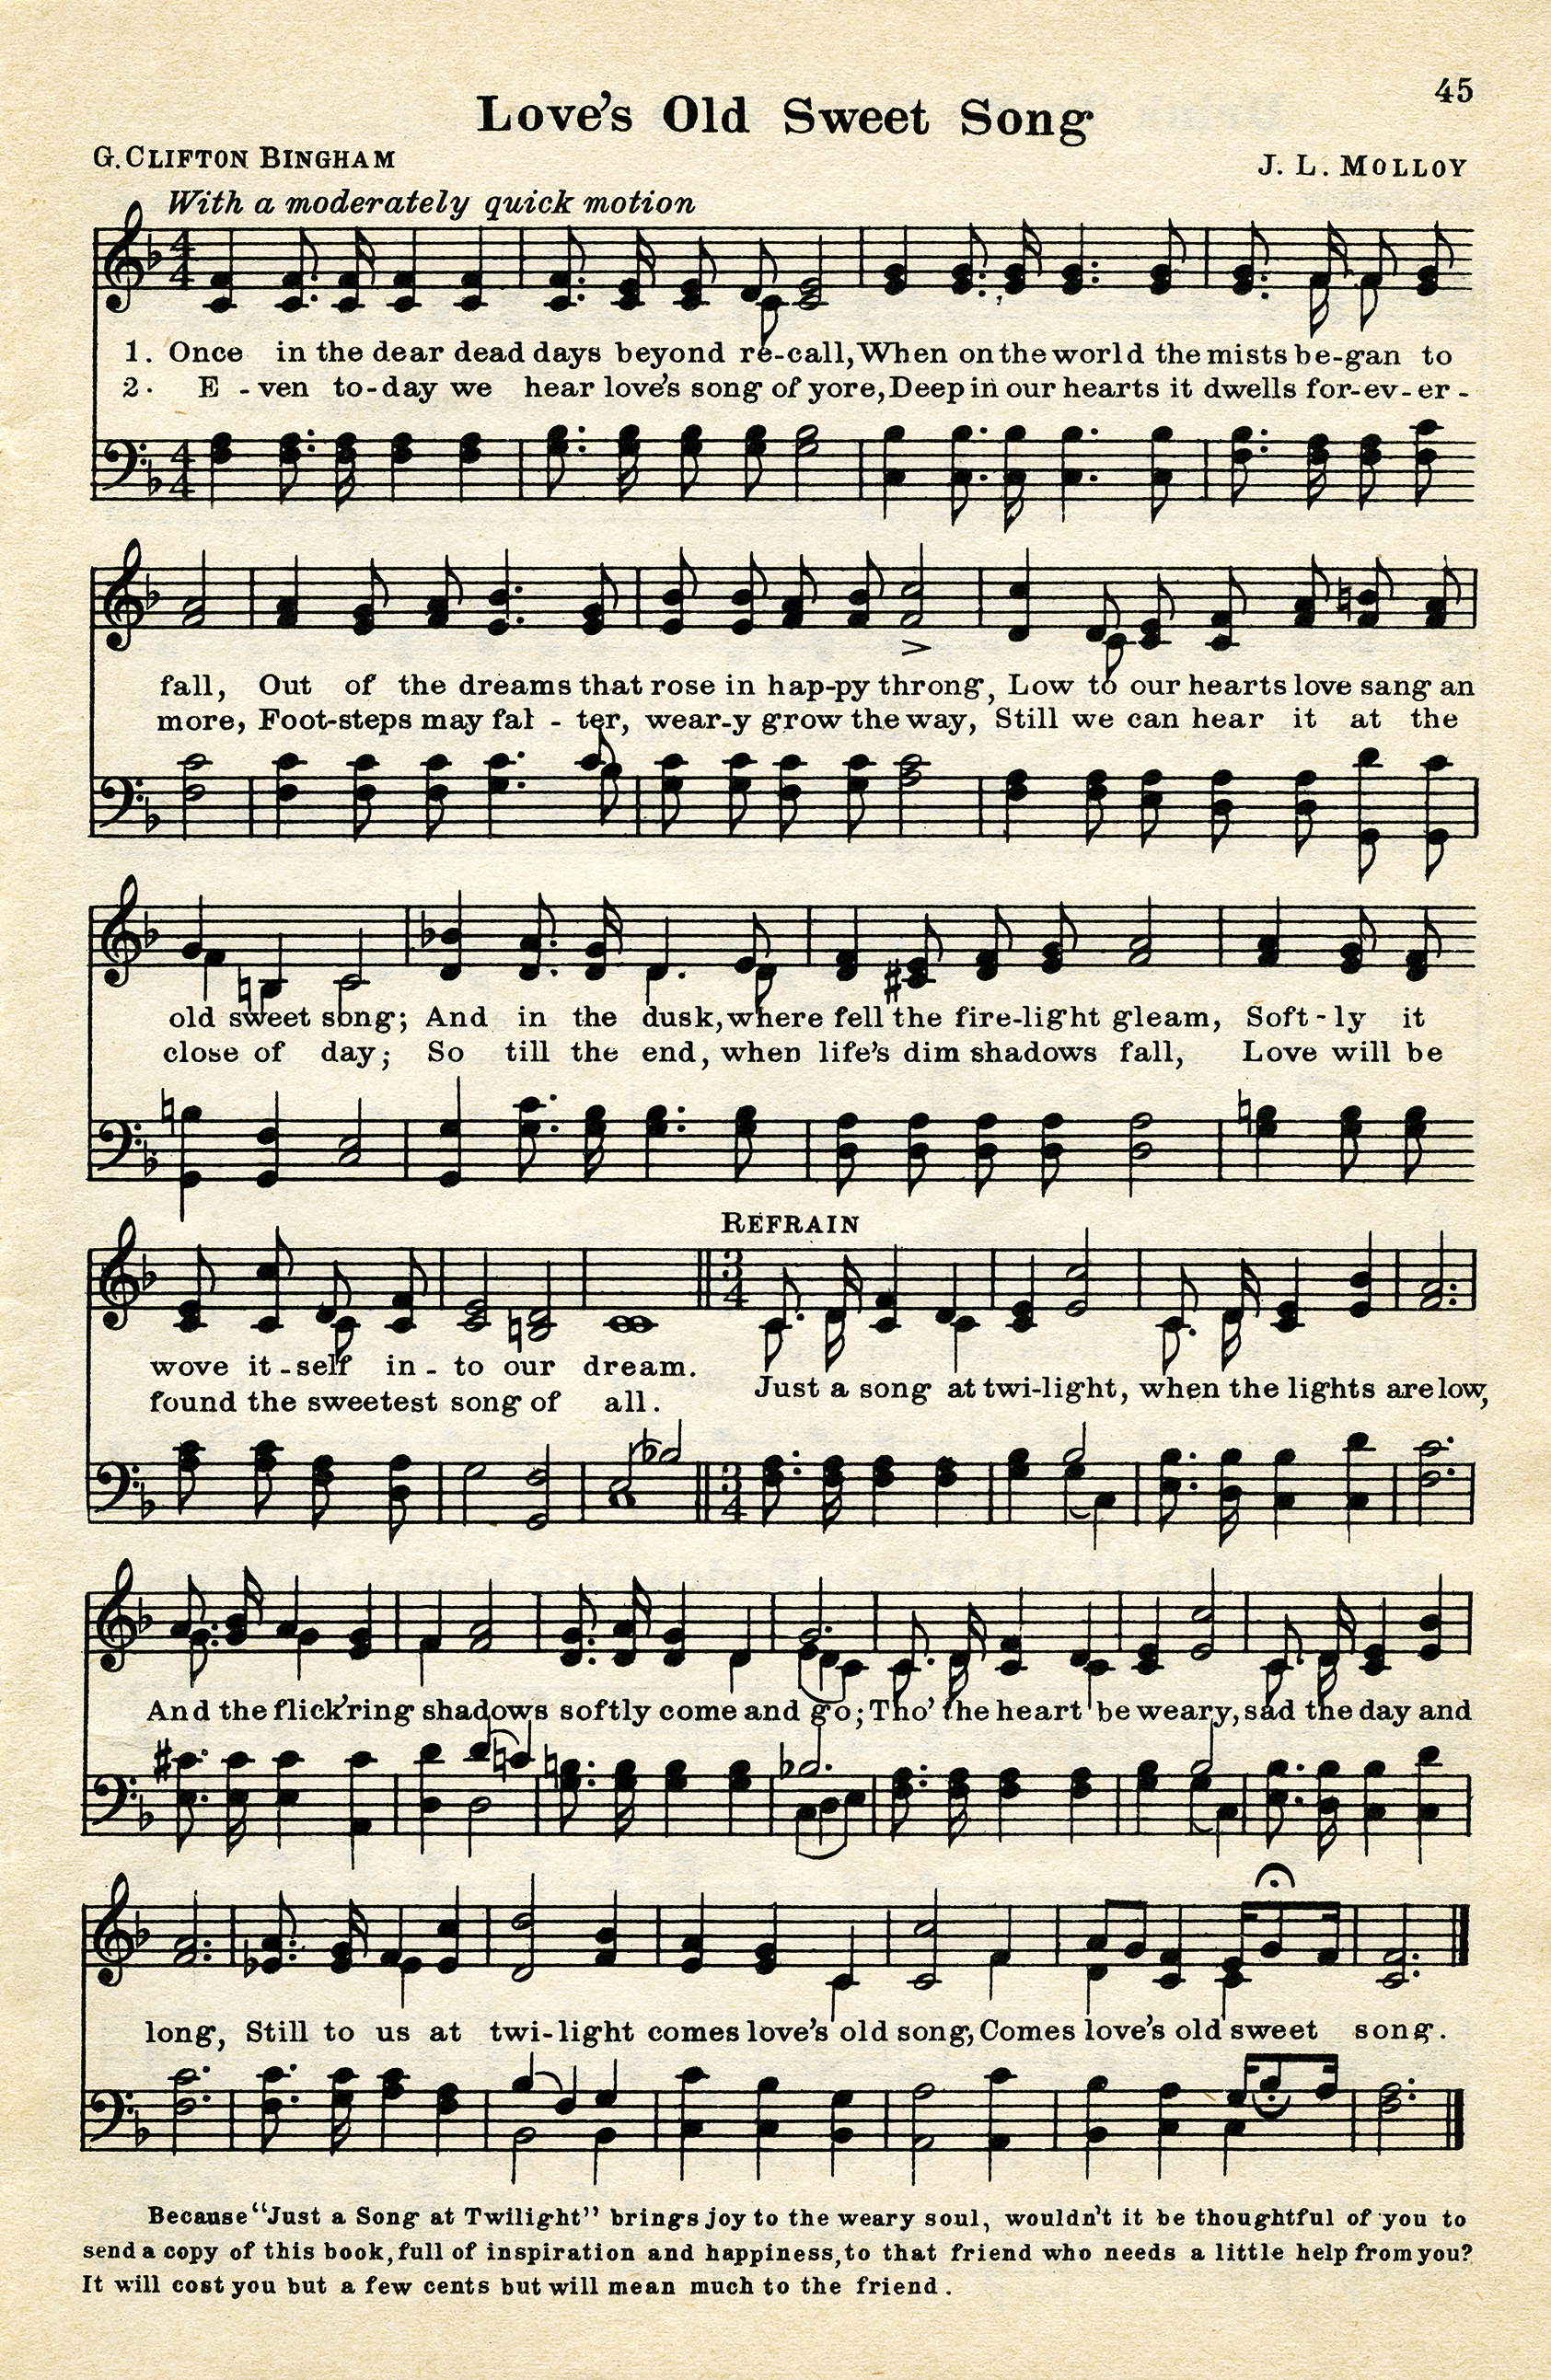 vintage love song, free vintage sheet music, digital music page, love's old sweet song, old music graphic